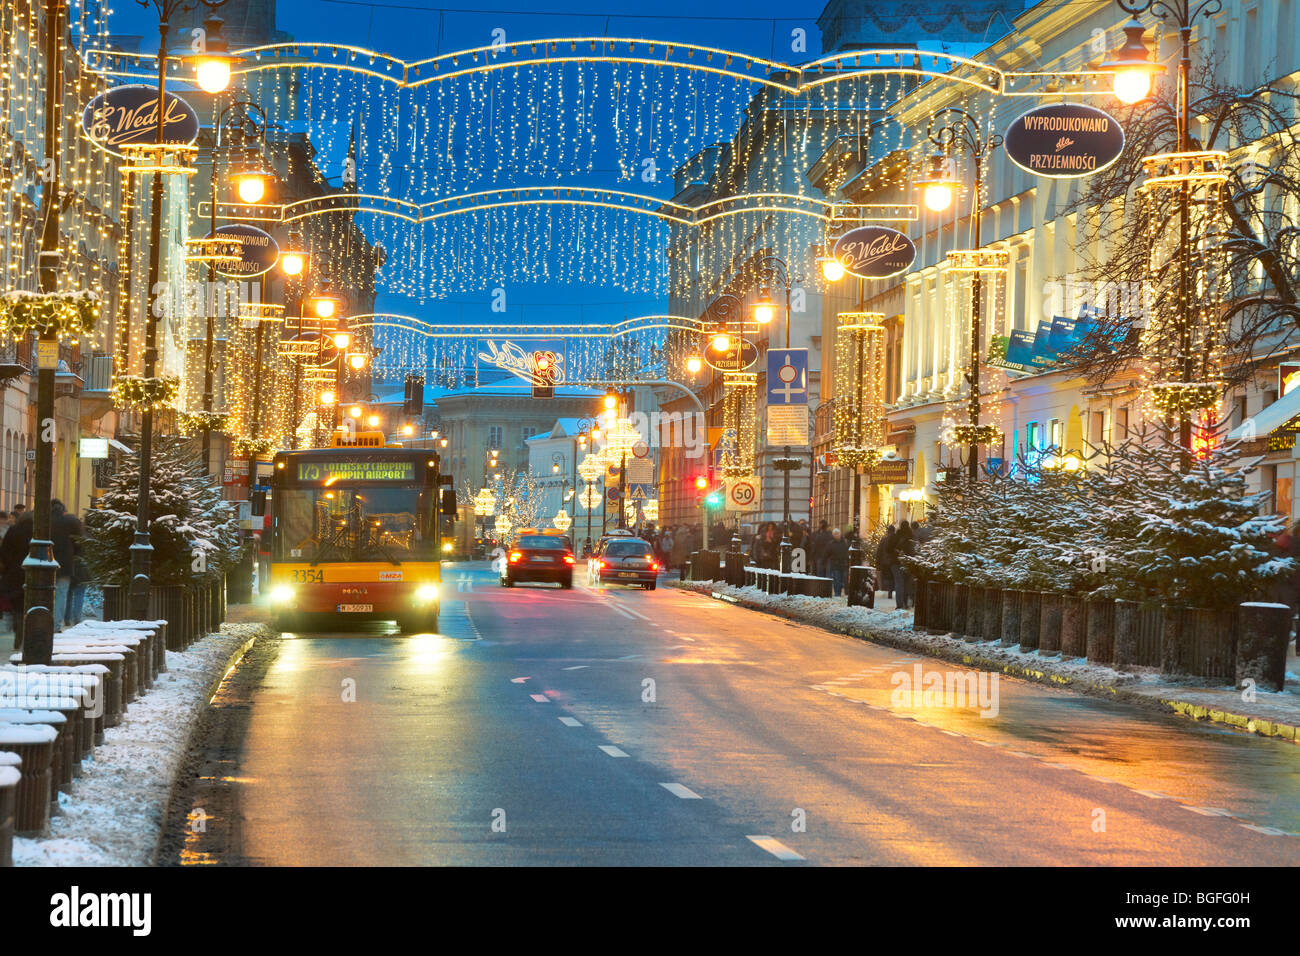 Christmas decorations outdoors, Old Town Warsaw, Poland Stock Photo ...